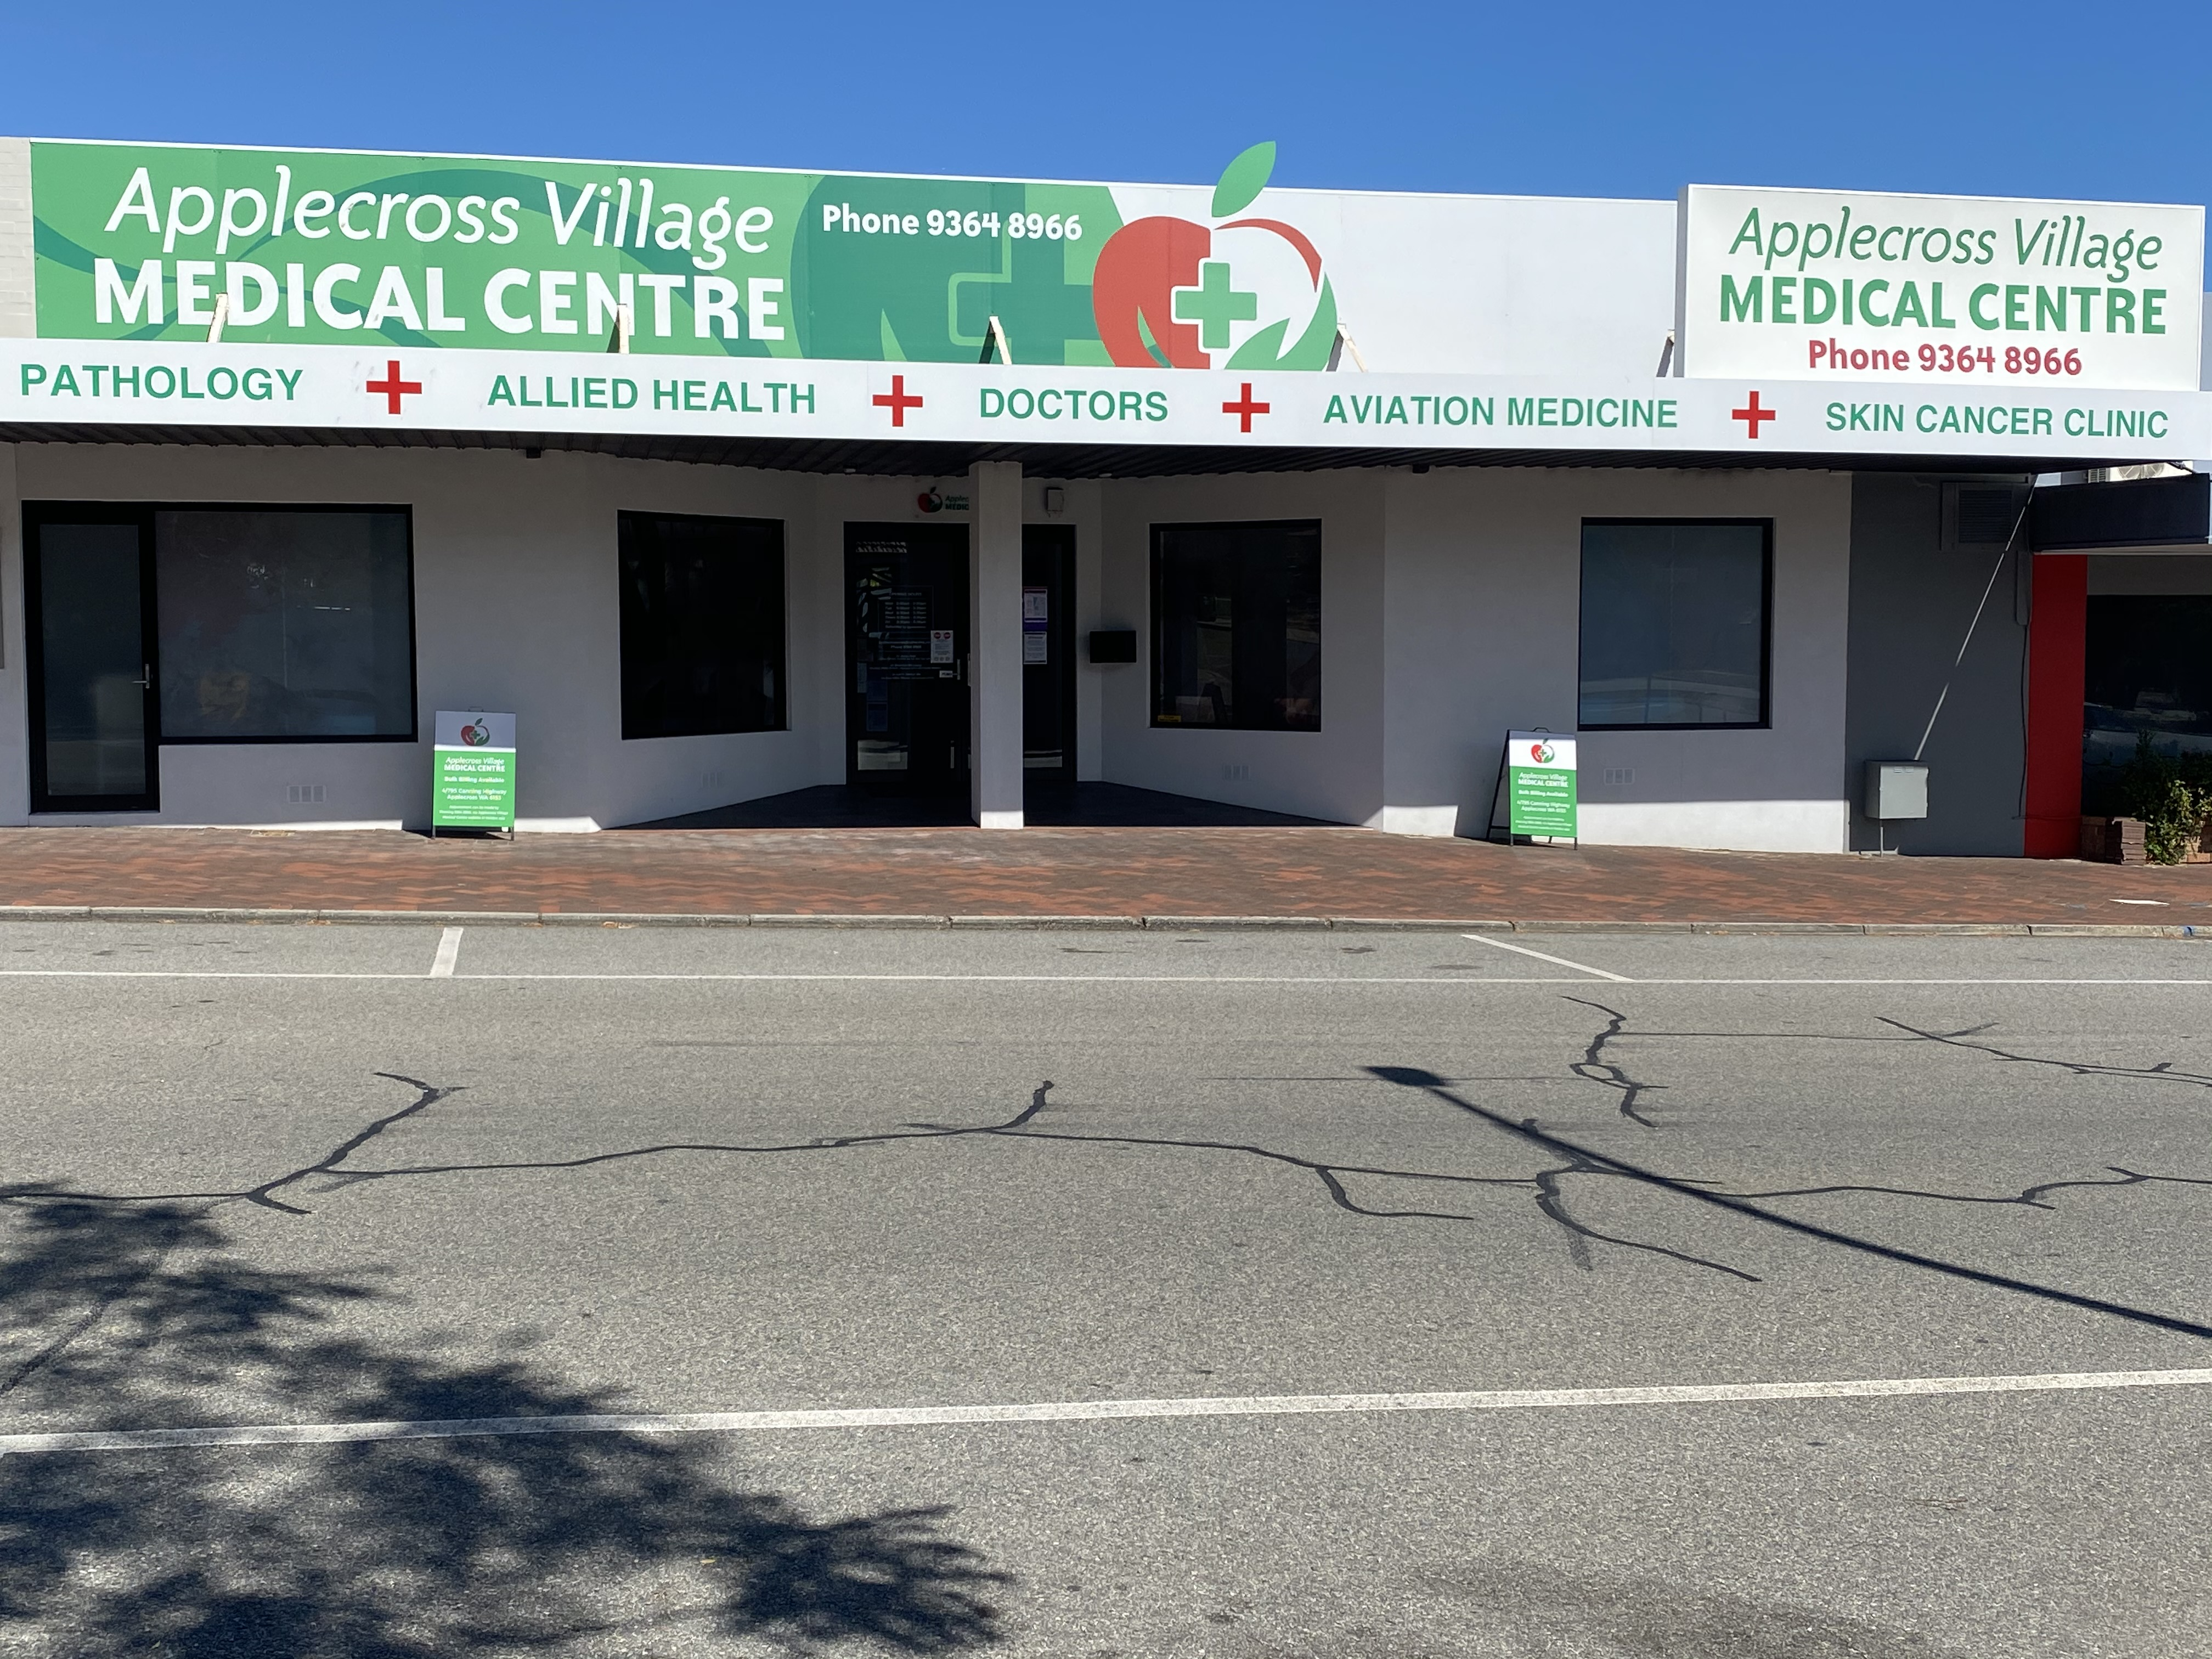 Applecross Medical